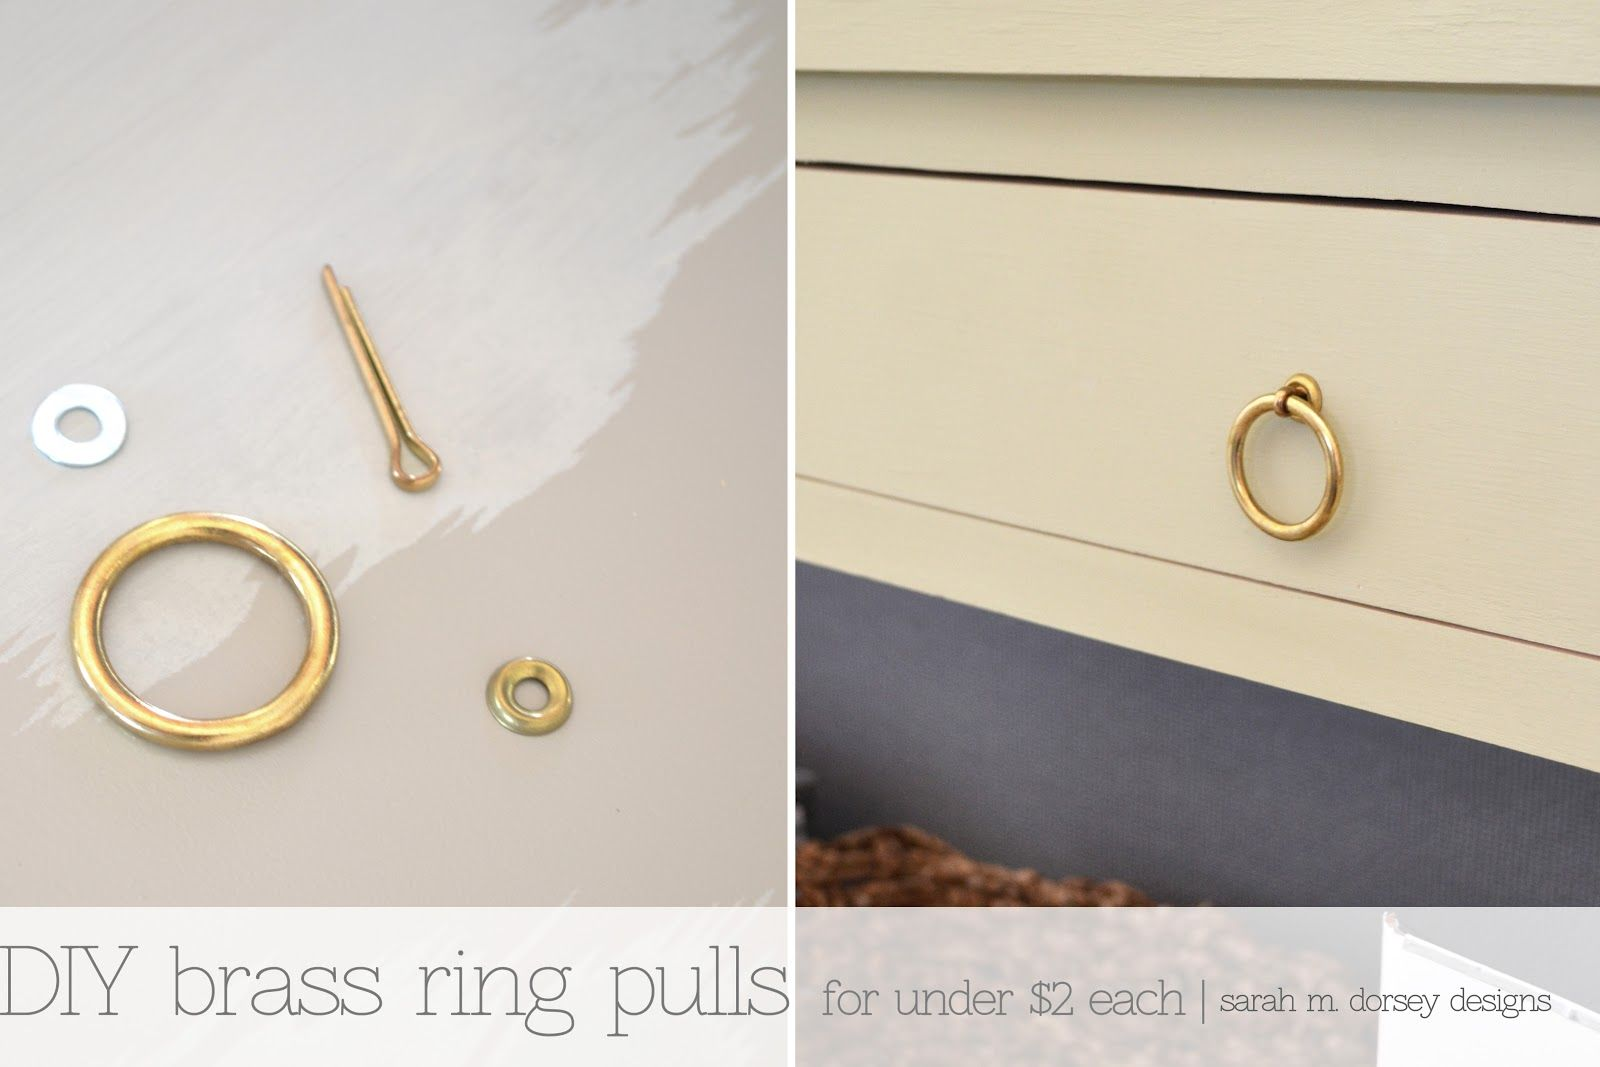 Ordinaire Inexpensive DIY Brass Ring Pulls For Furniture. Only 2 Bucks!!!!! Sarah M.  Dorsey Designs: Sofa Table Update + Diy Brass Ring Pulls